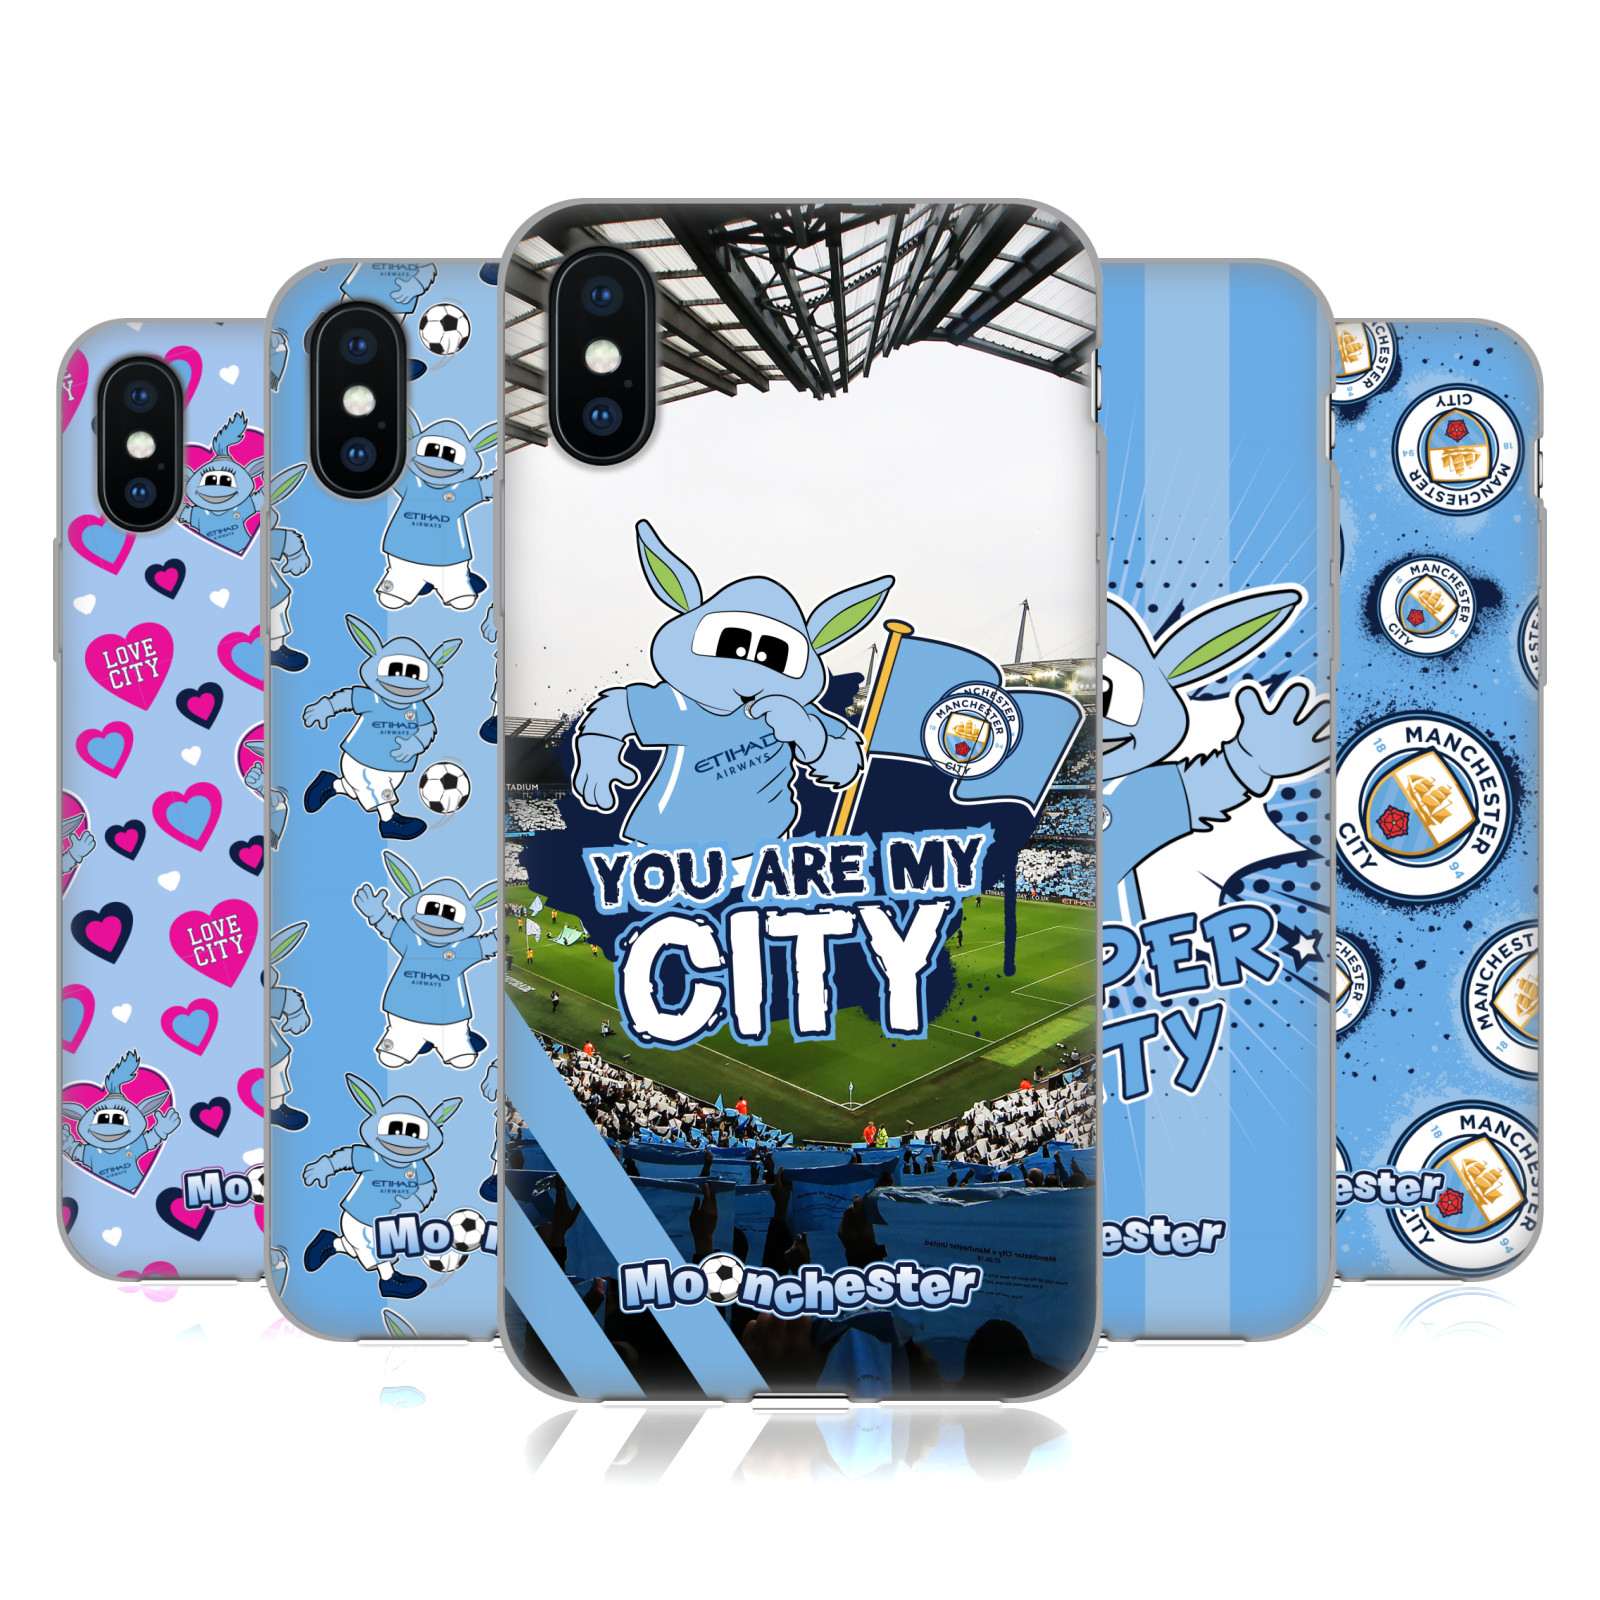 Manchester City Man City FC <!--translate-lineup-->Moonchester & Moonbeam<!--translate-lineup-->